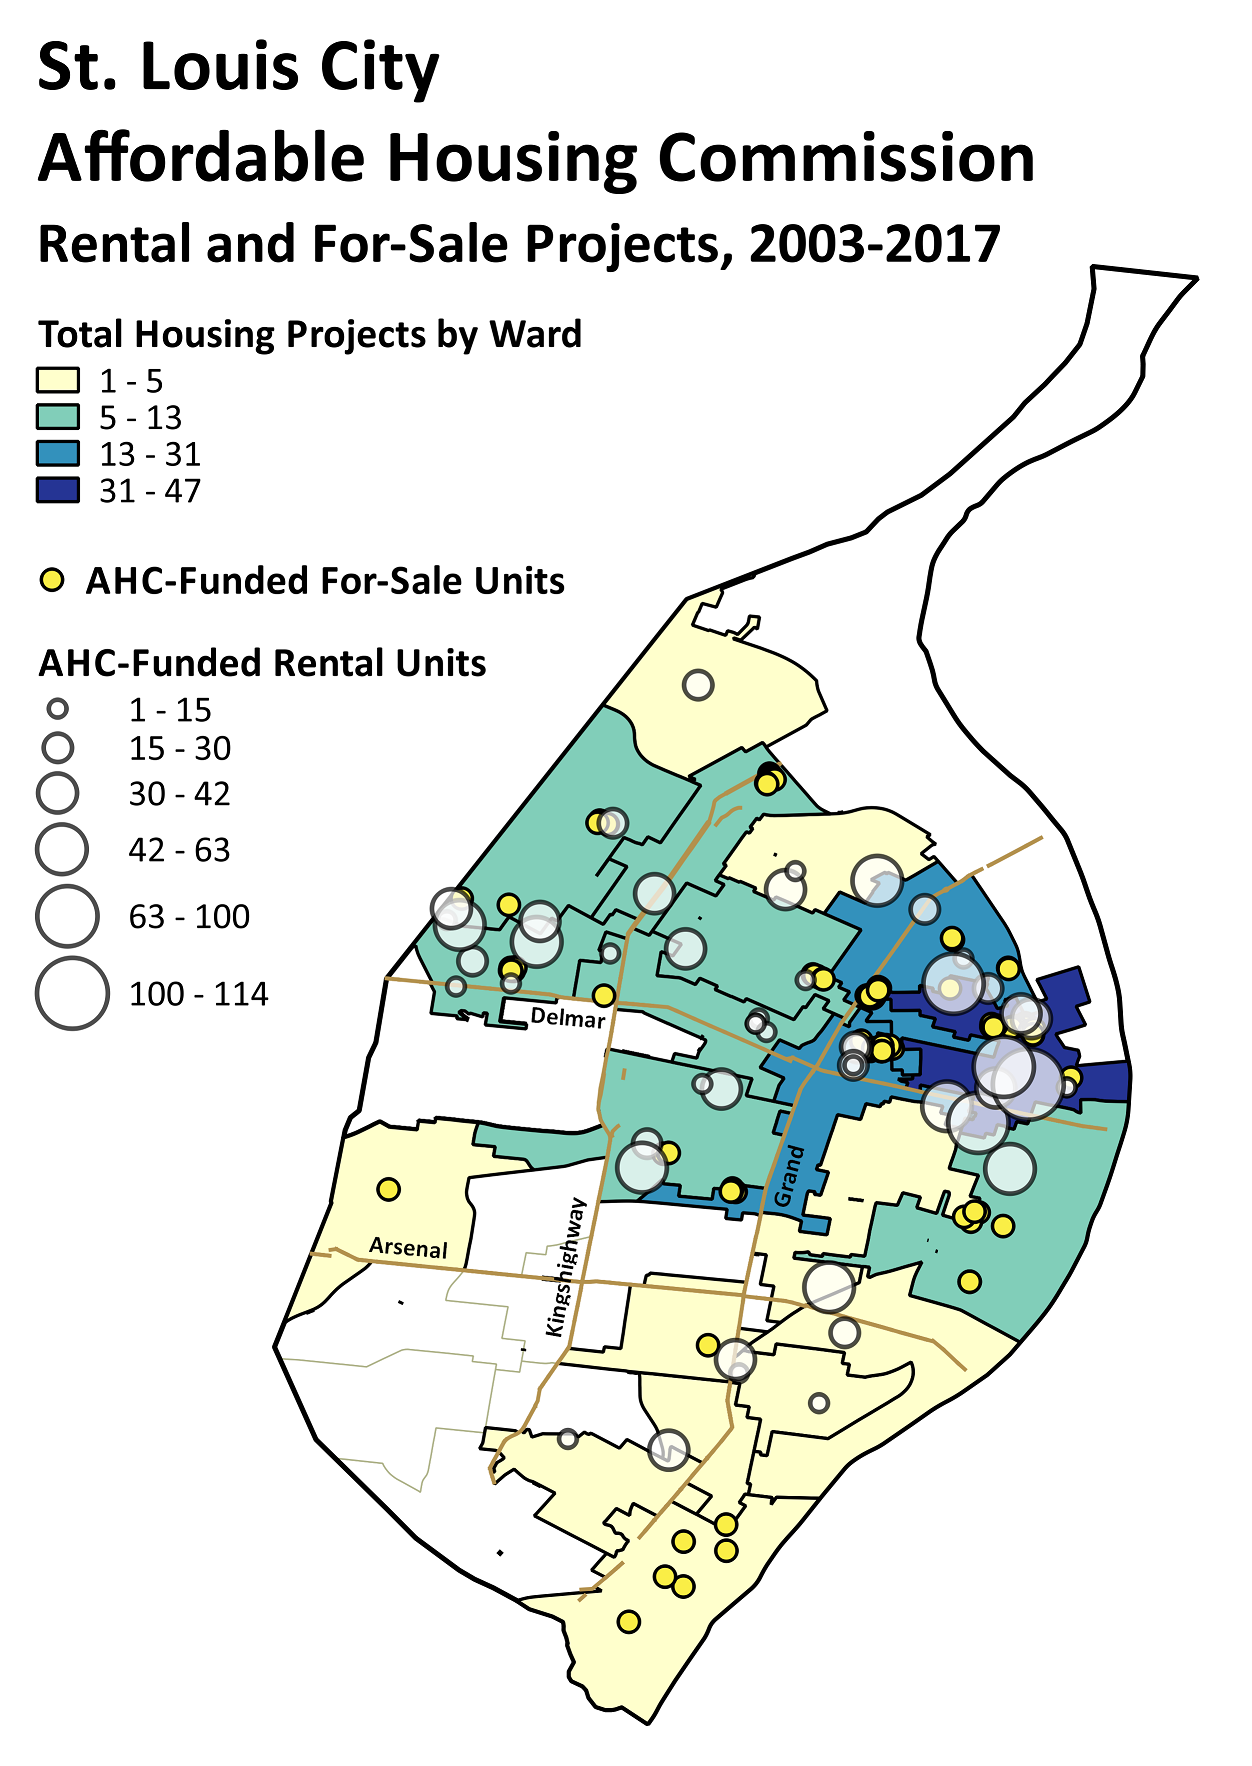 AHC-Projects-Total-by-Ward.png